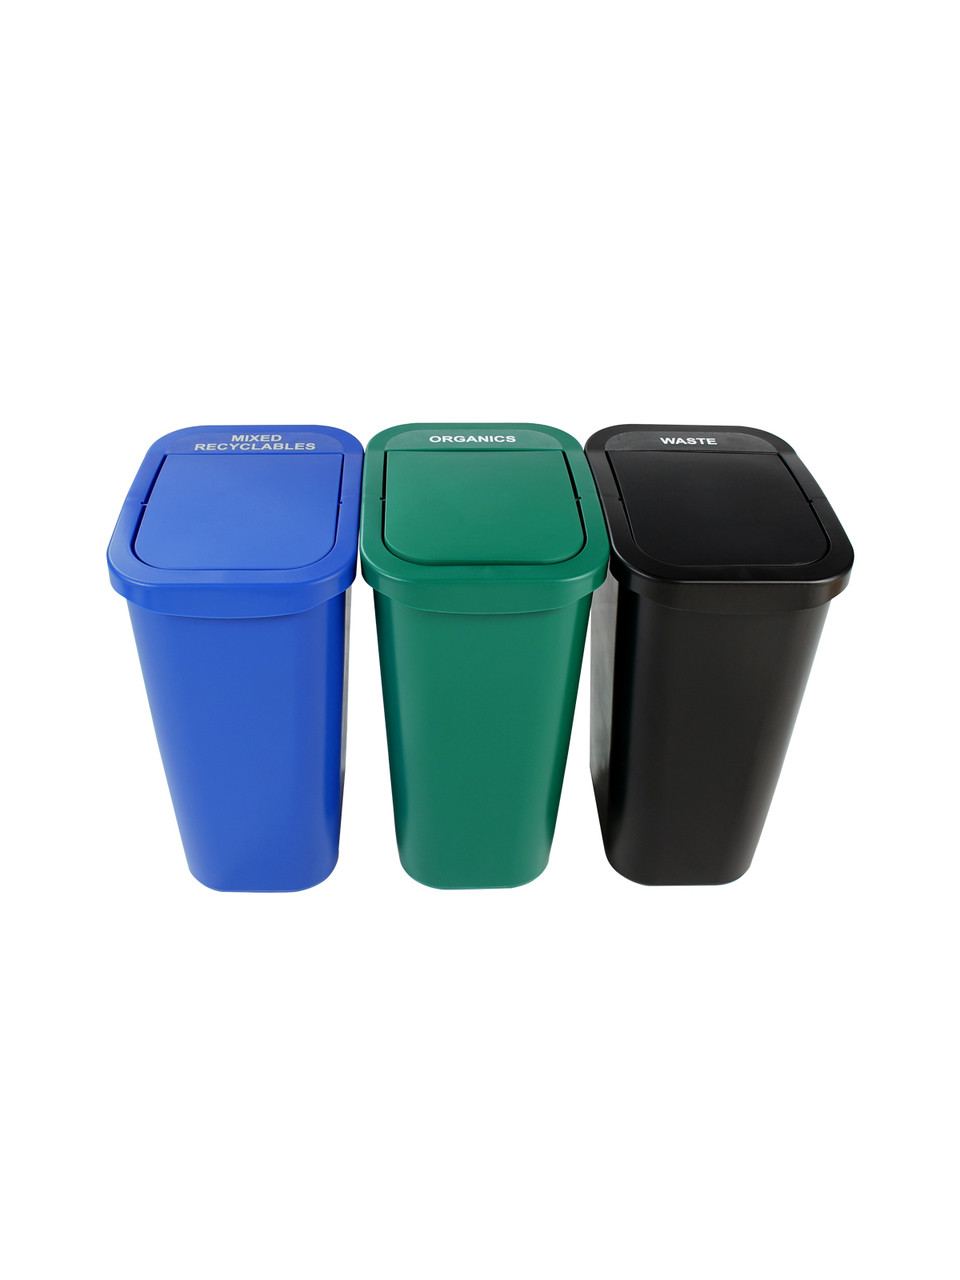 30 Gallon Billi Box Triple Trash Can Recycle Bin Center 8102031-444 (Mixed Swing, Organics Swing, Waste Swing)